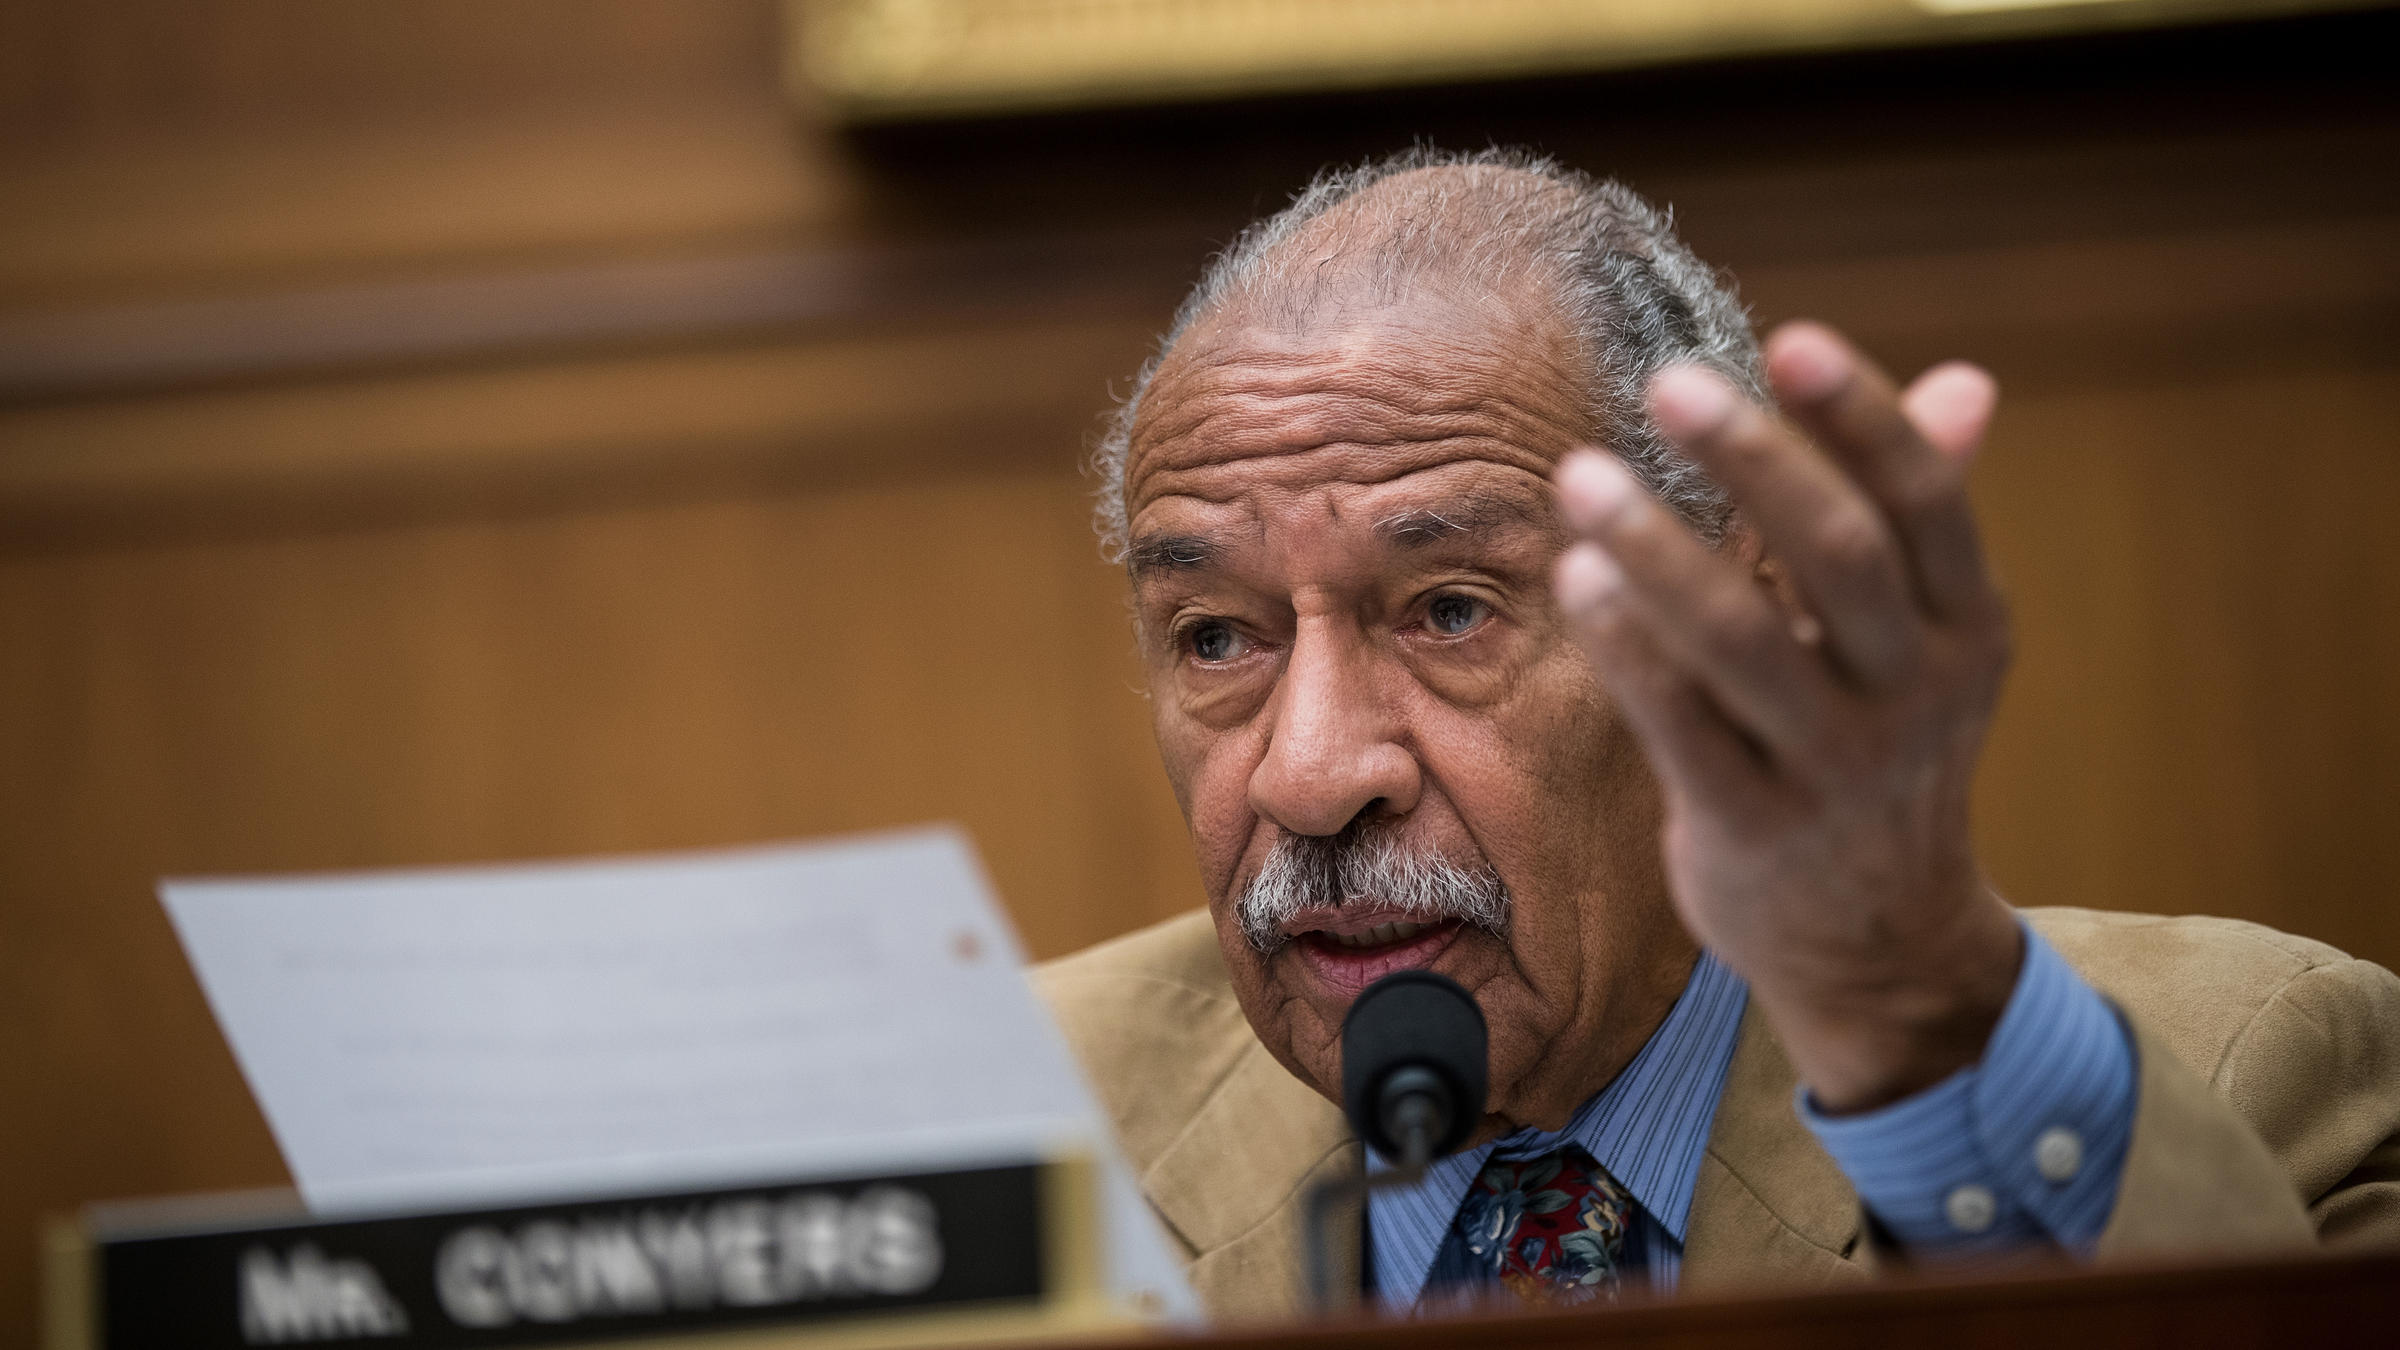 John Conyers steps down from House Judiciary Committee after sexual misconduct allegations